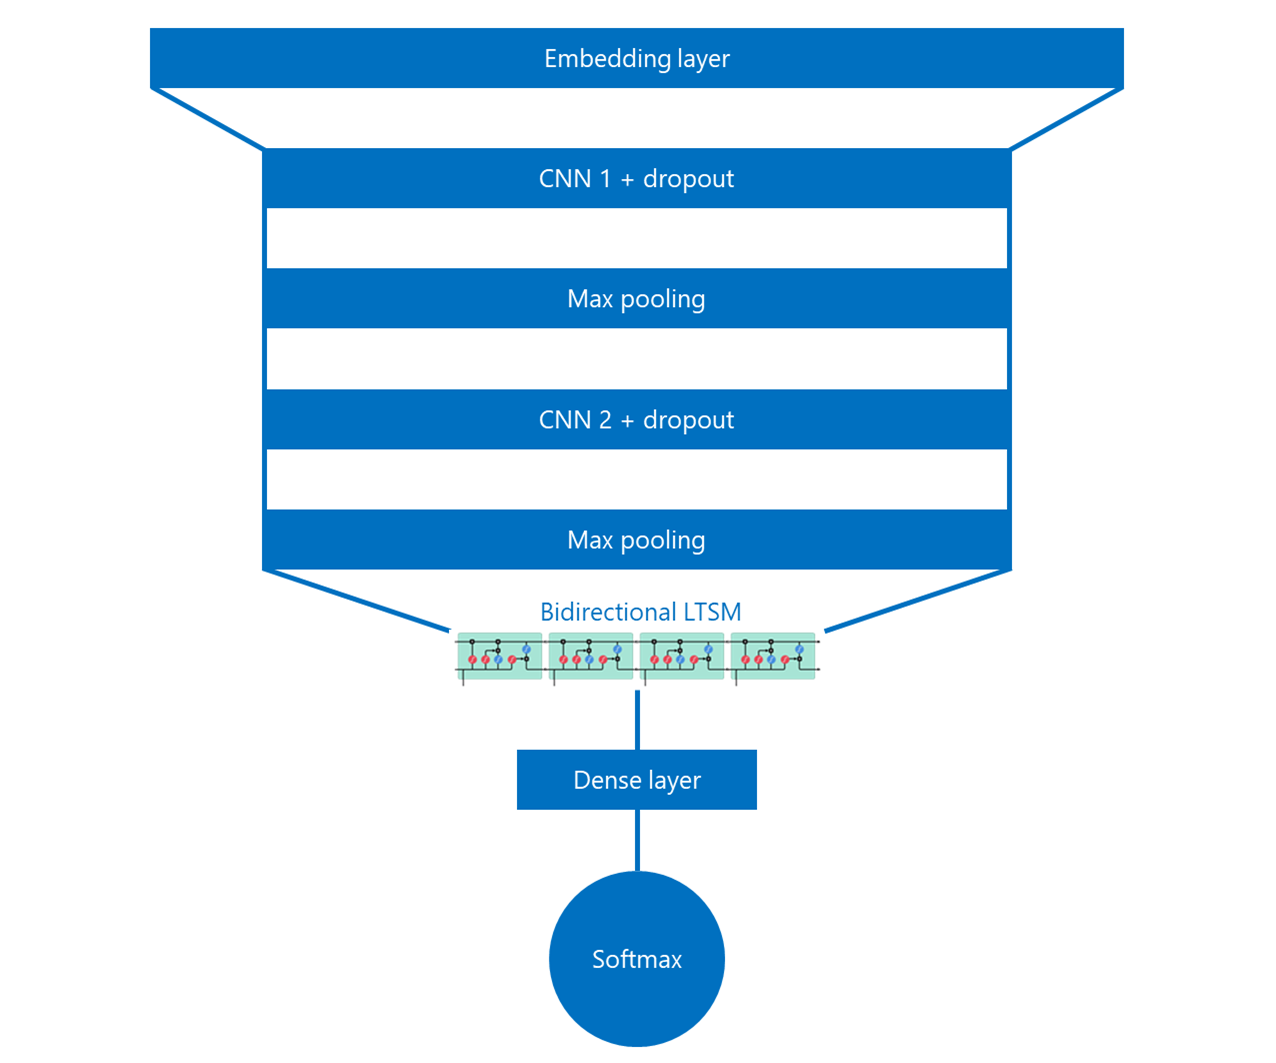 Diagram showing layers of the CNN BiLSTM model